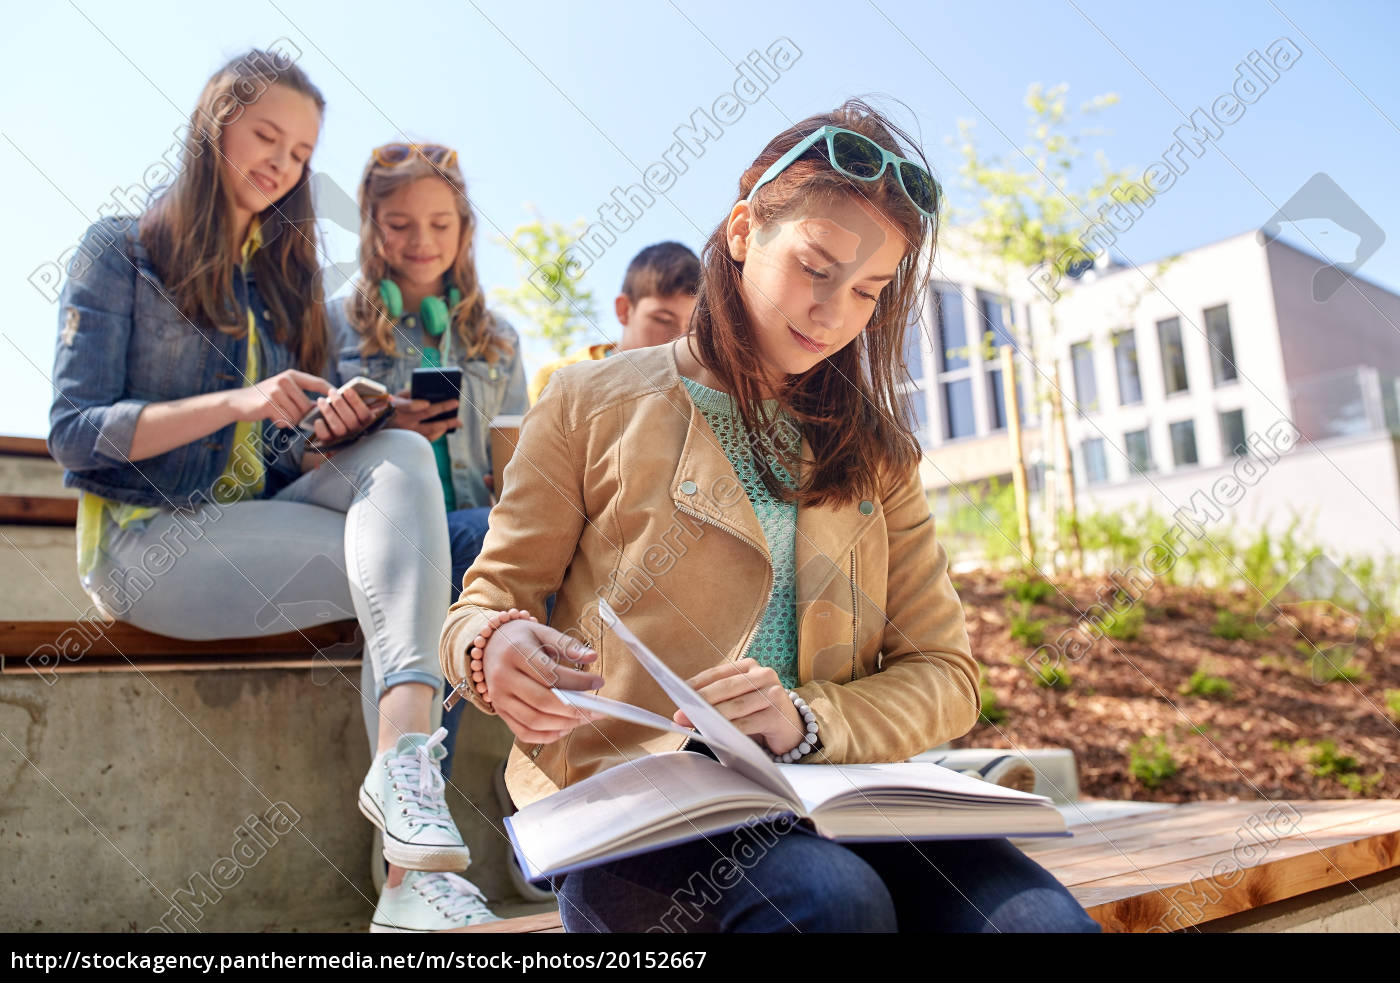 high, school, student, girl, reading, book - 20152667